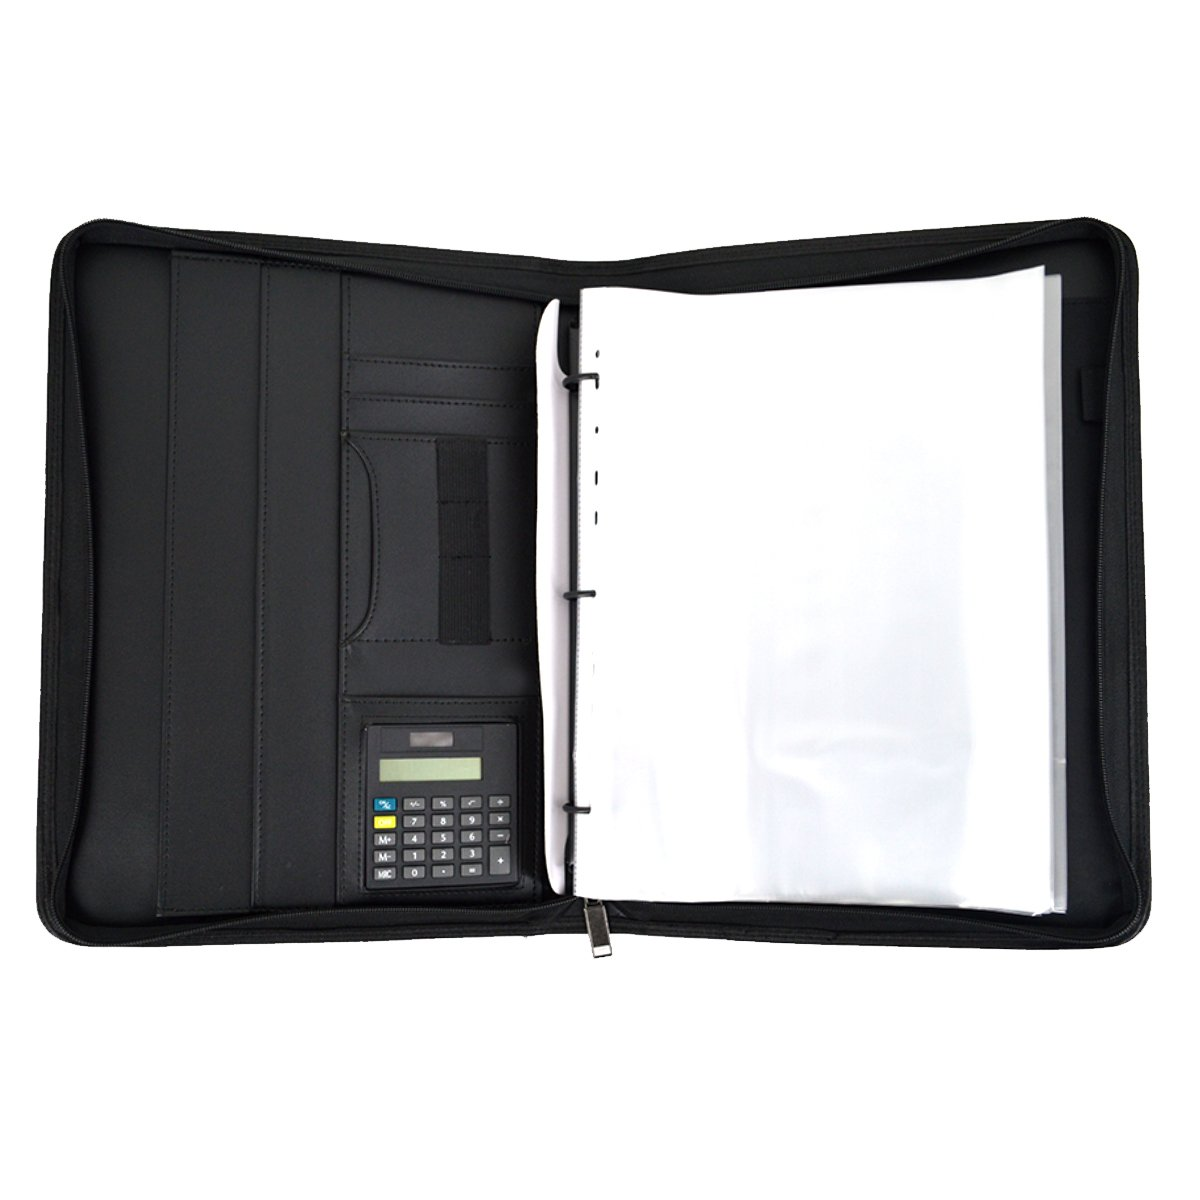 Mily Zippered Leather Business Portfolio Padfolio 3-Ring Binders A4 Business Notebook With Calculator Professional Black PU Leather File